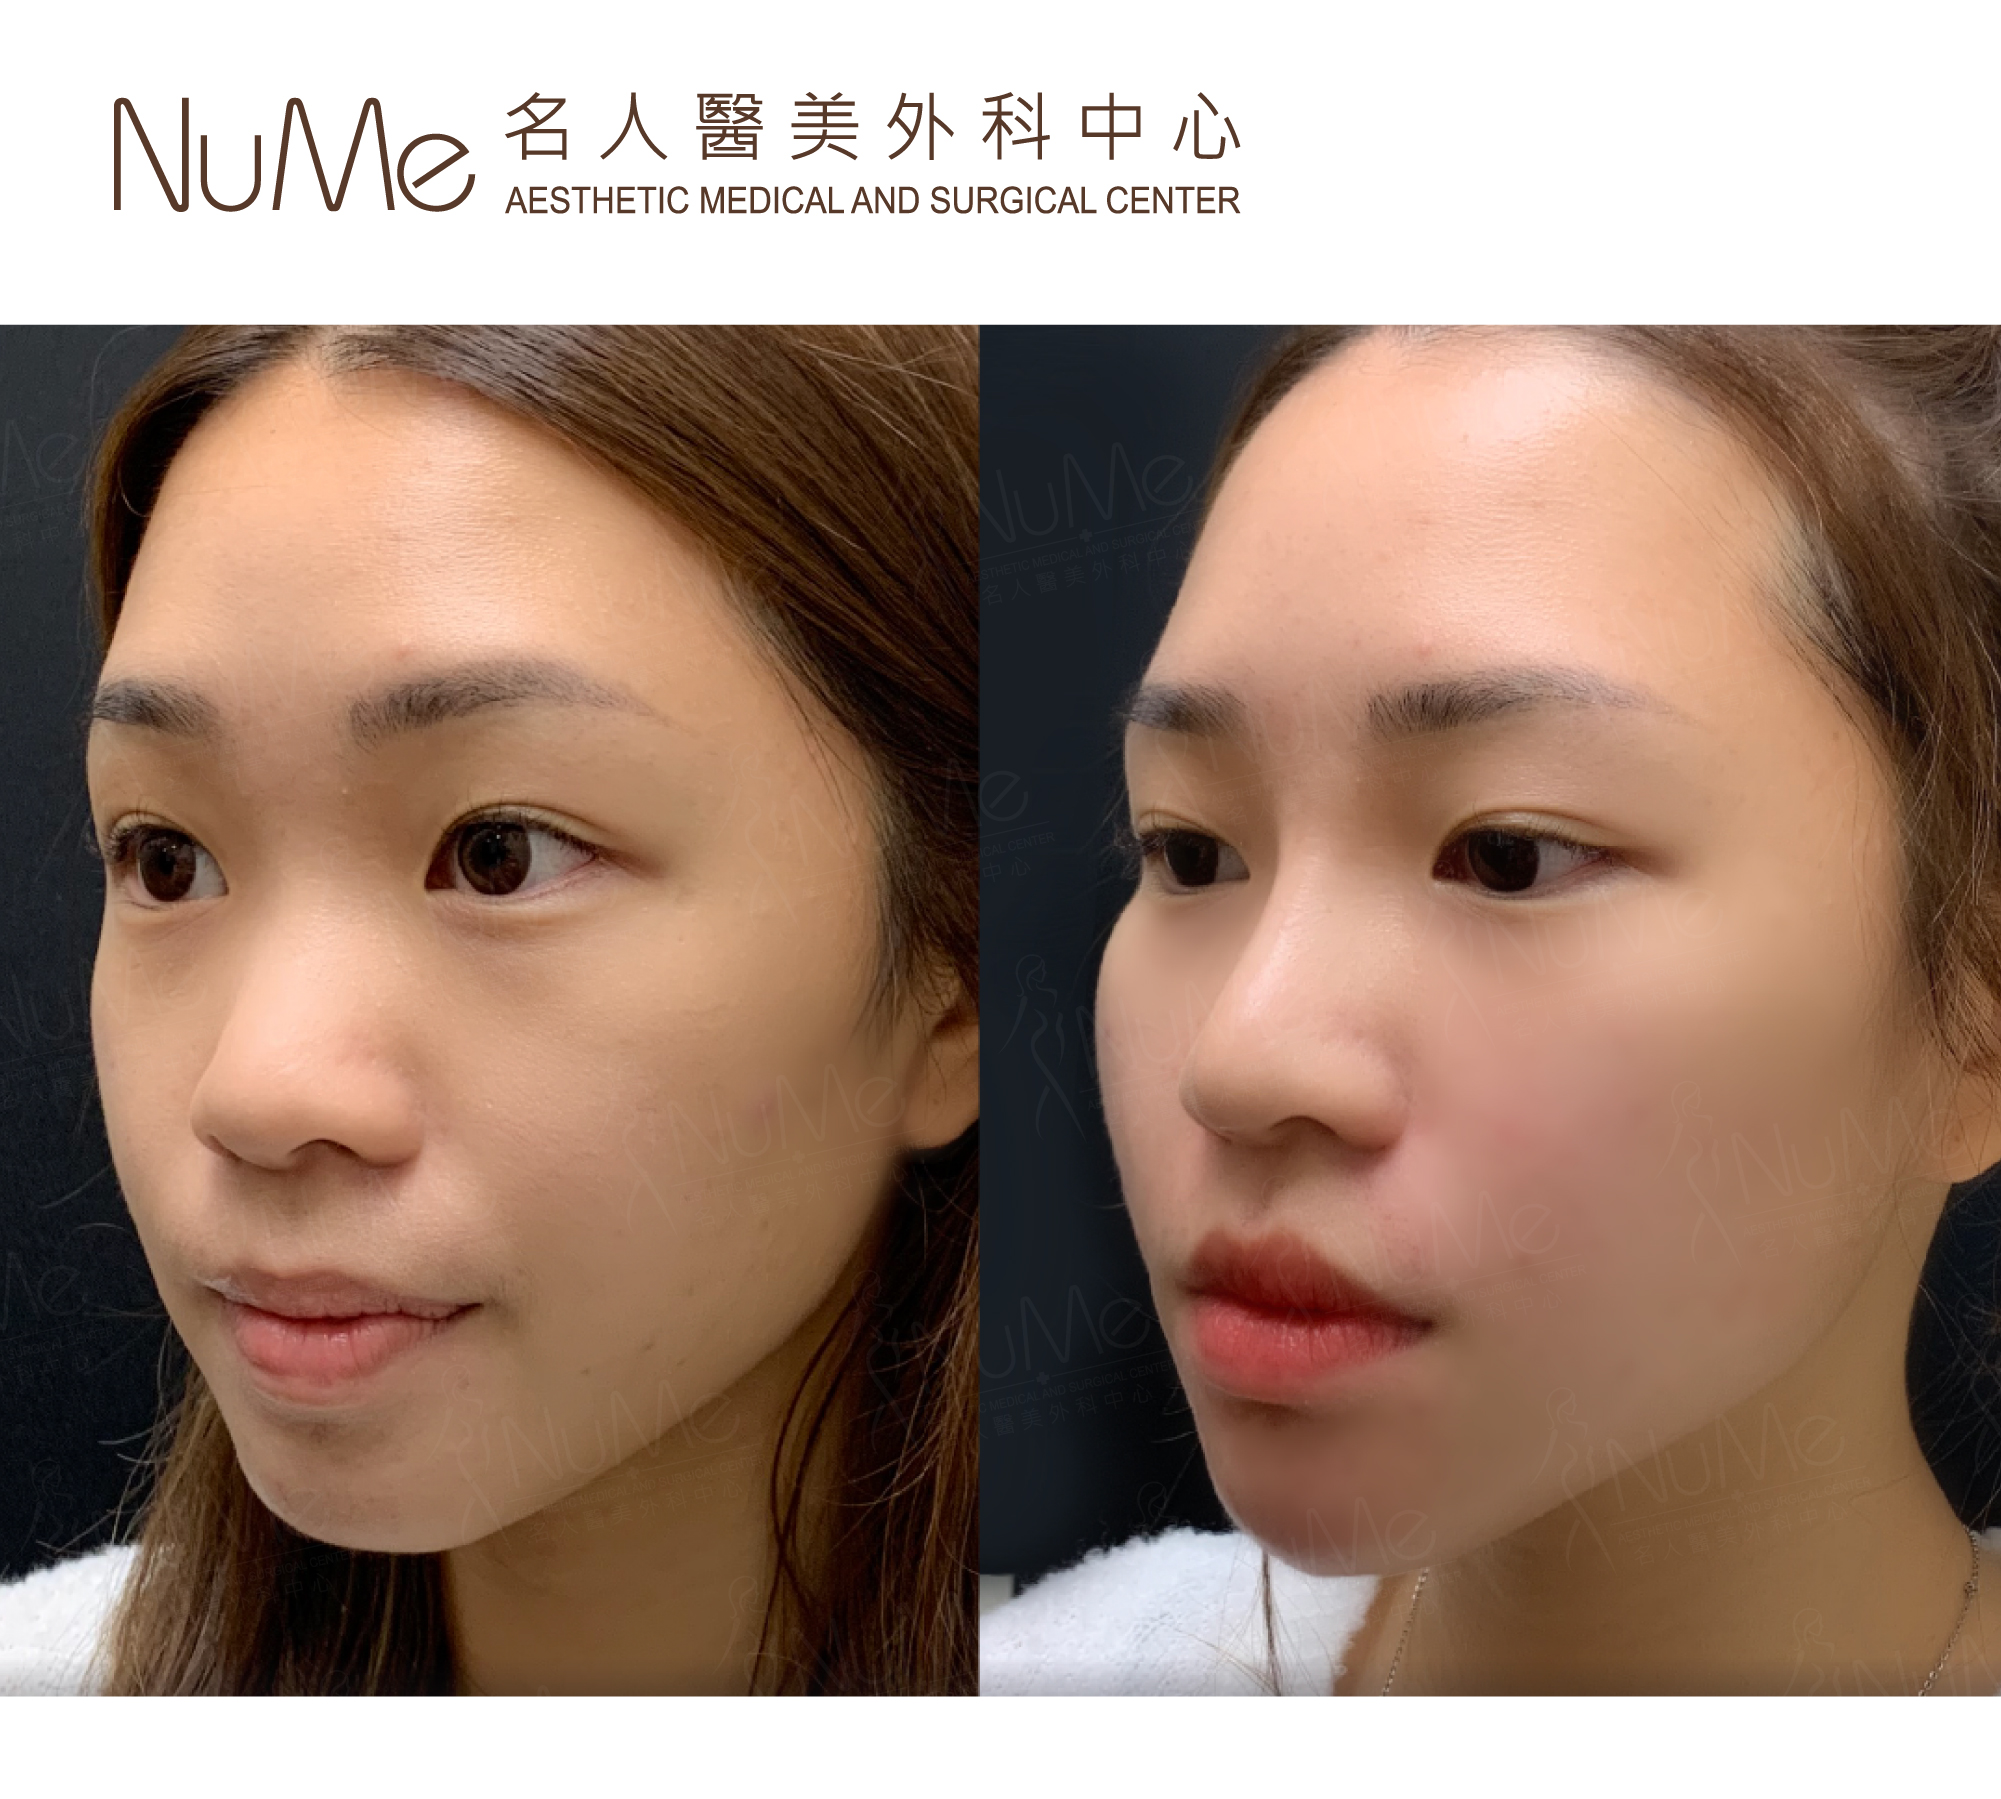 NuMe-Facebook-Before-After-Photos-Comments-Natalie-08.jpg